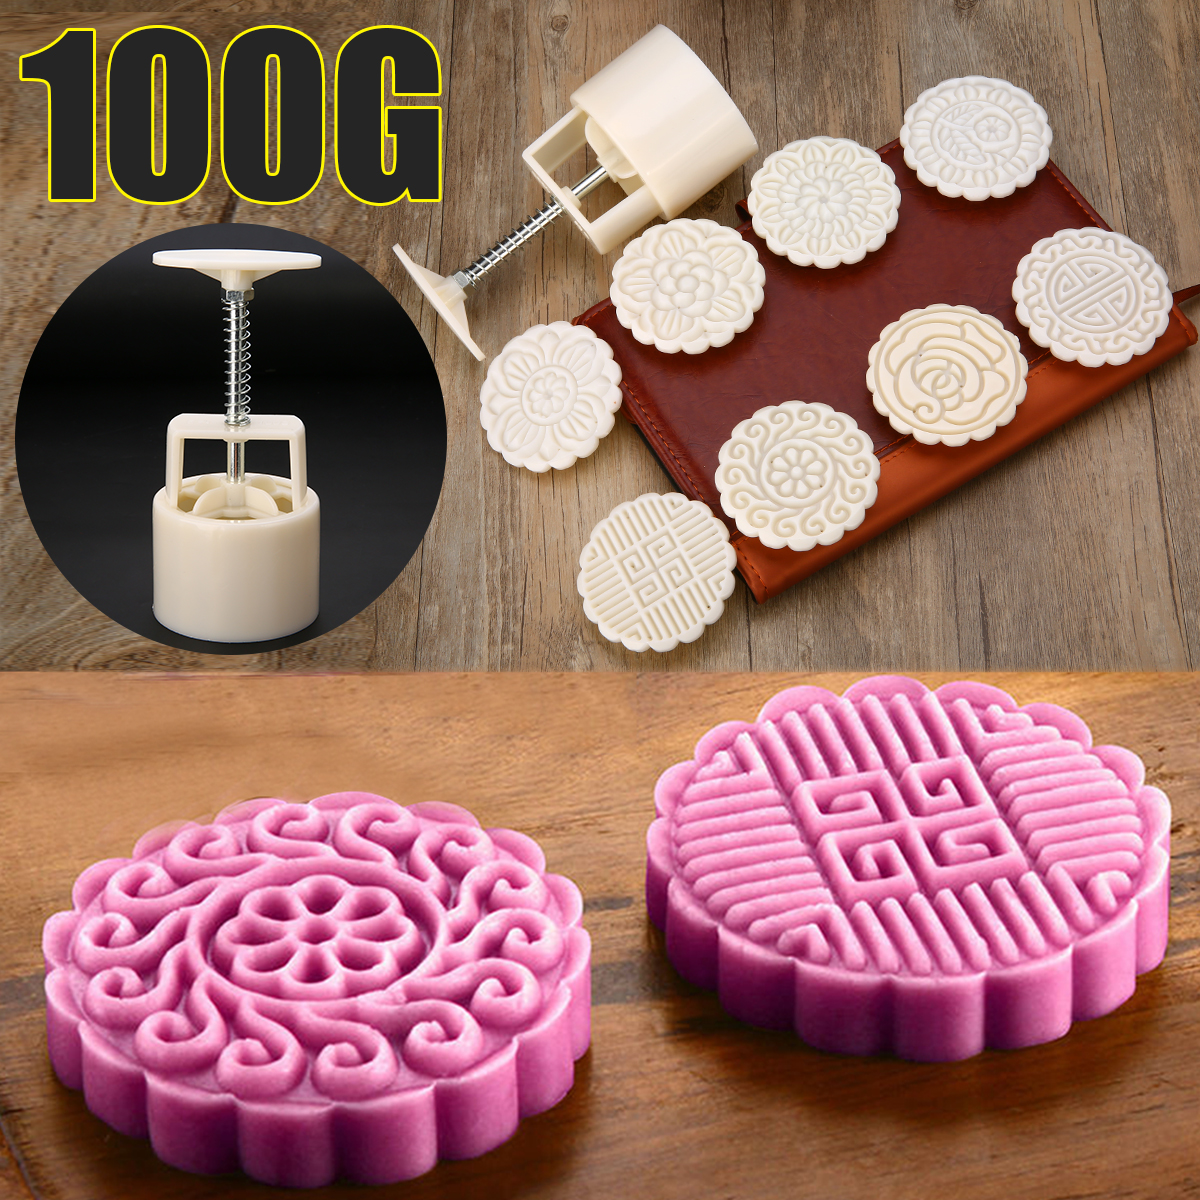 8 Style Round Flower Stamps Pastry Mooncake Mold Cookies Mooncake Decor 100g Hand Pressure Baking Tool